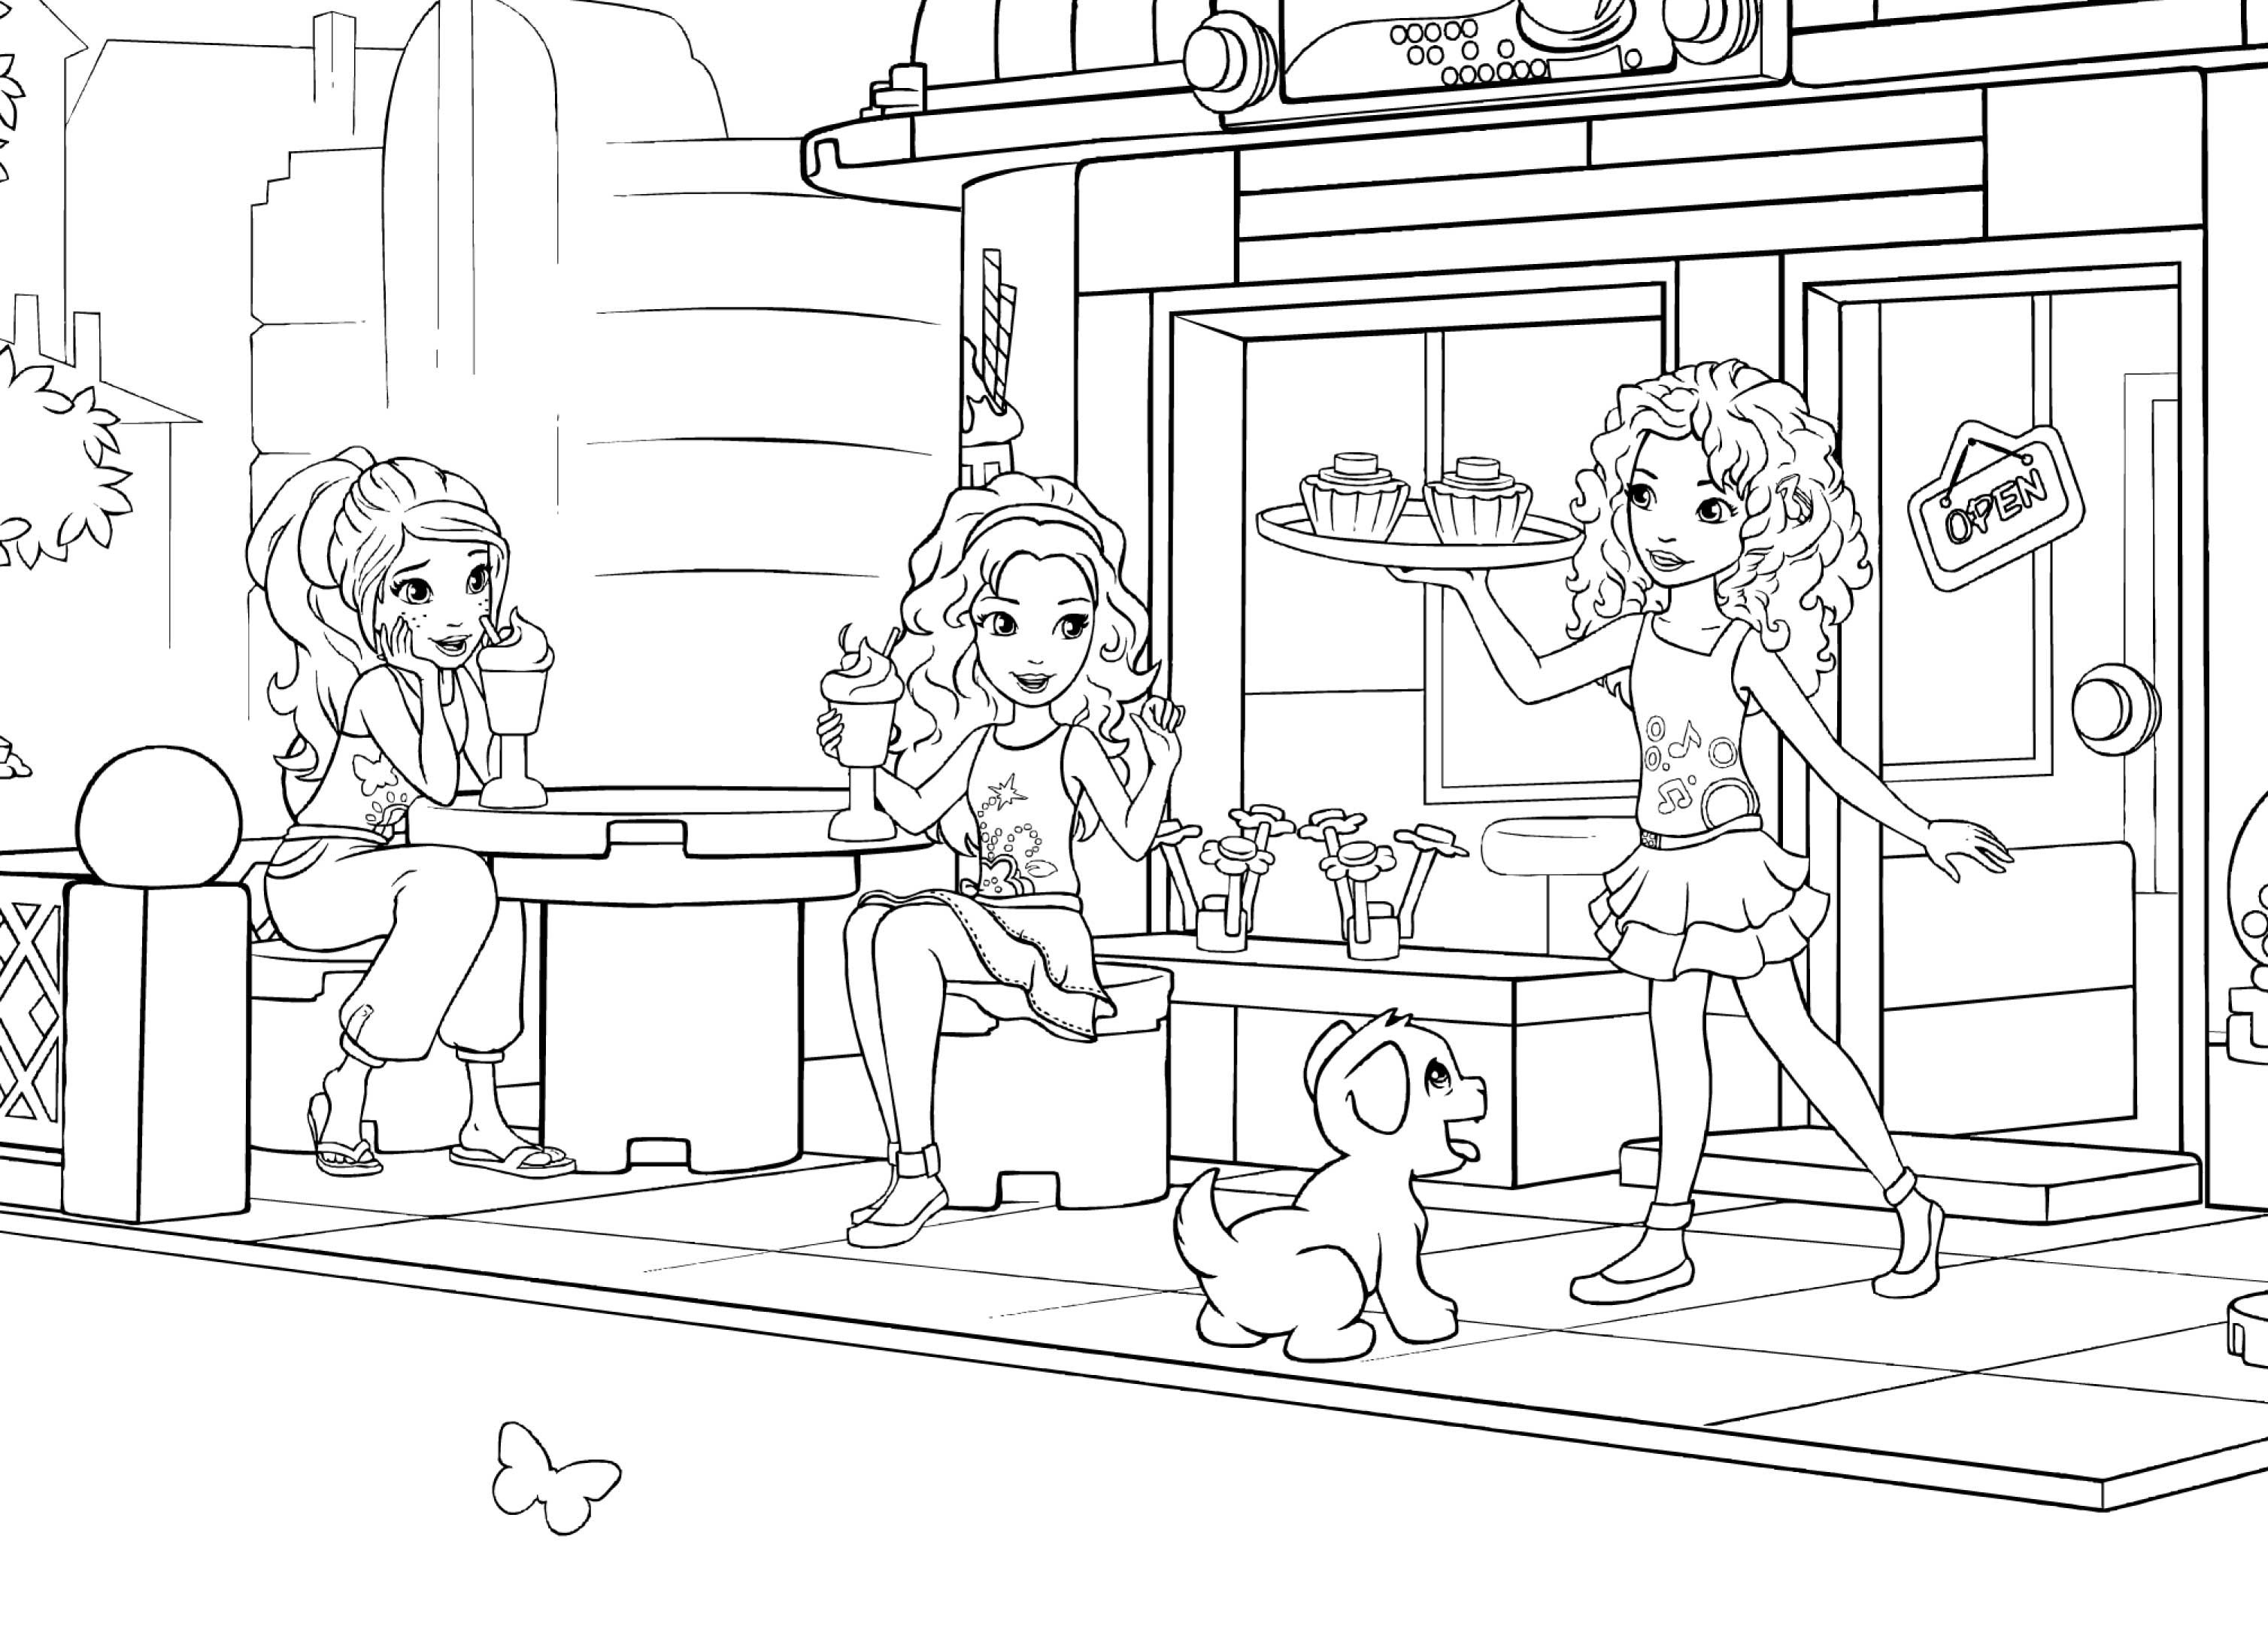 Lego Friends Printable Coloring Pages Coloring Ideas Lego Friends Coloring Pages To Printovely Birthday